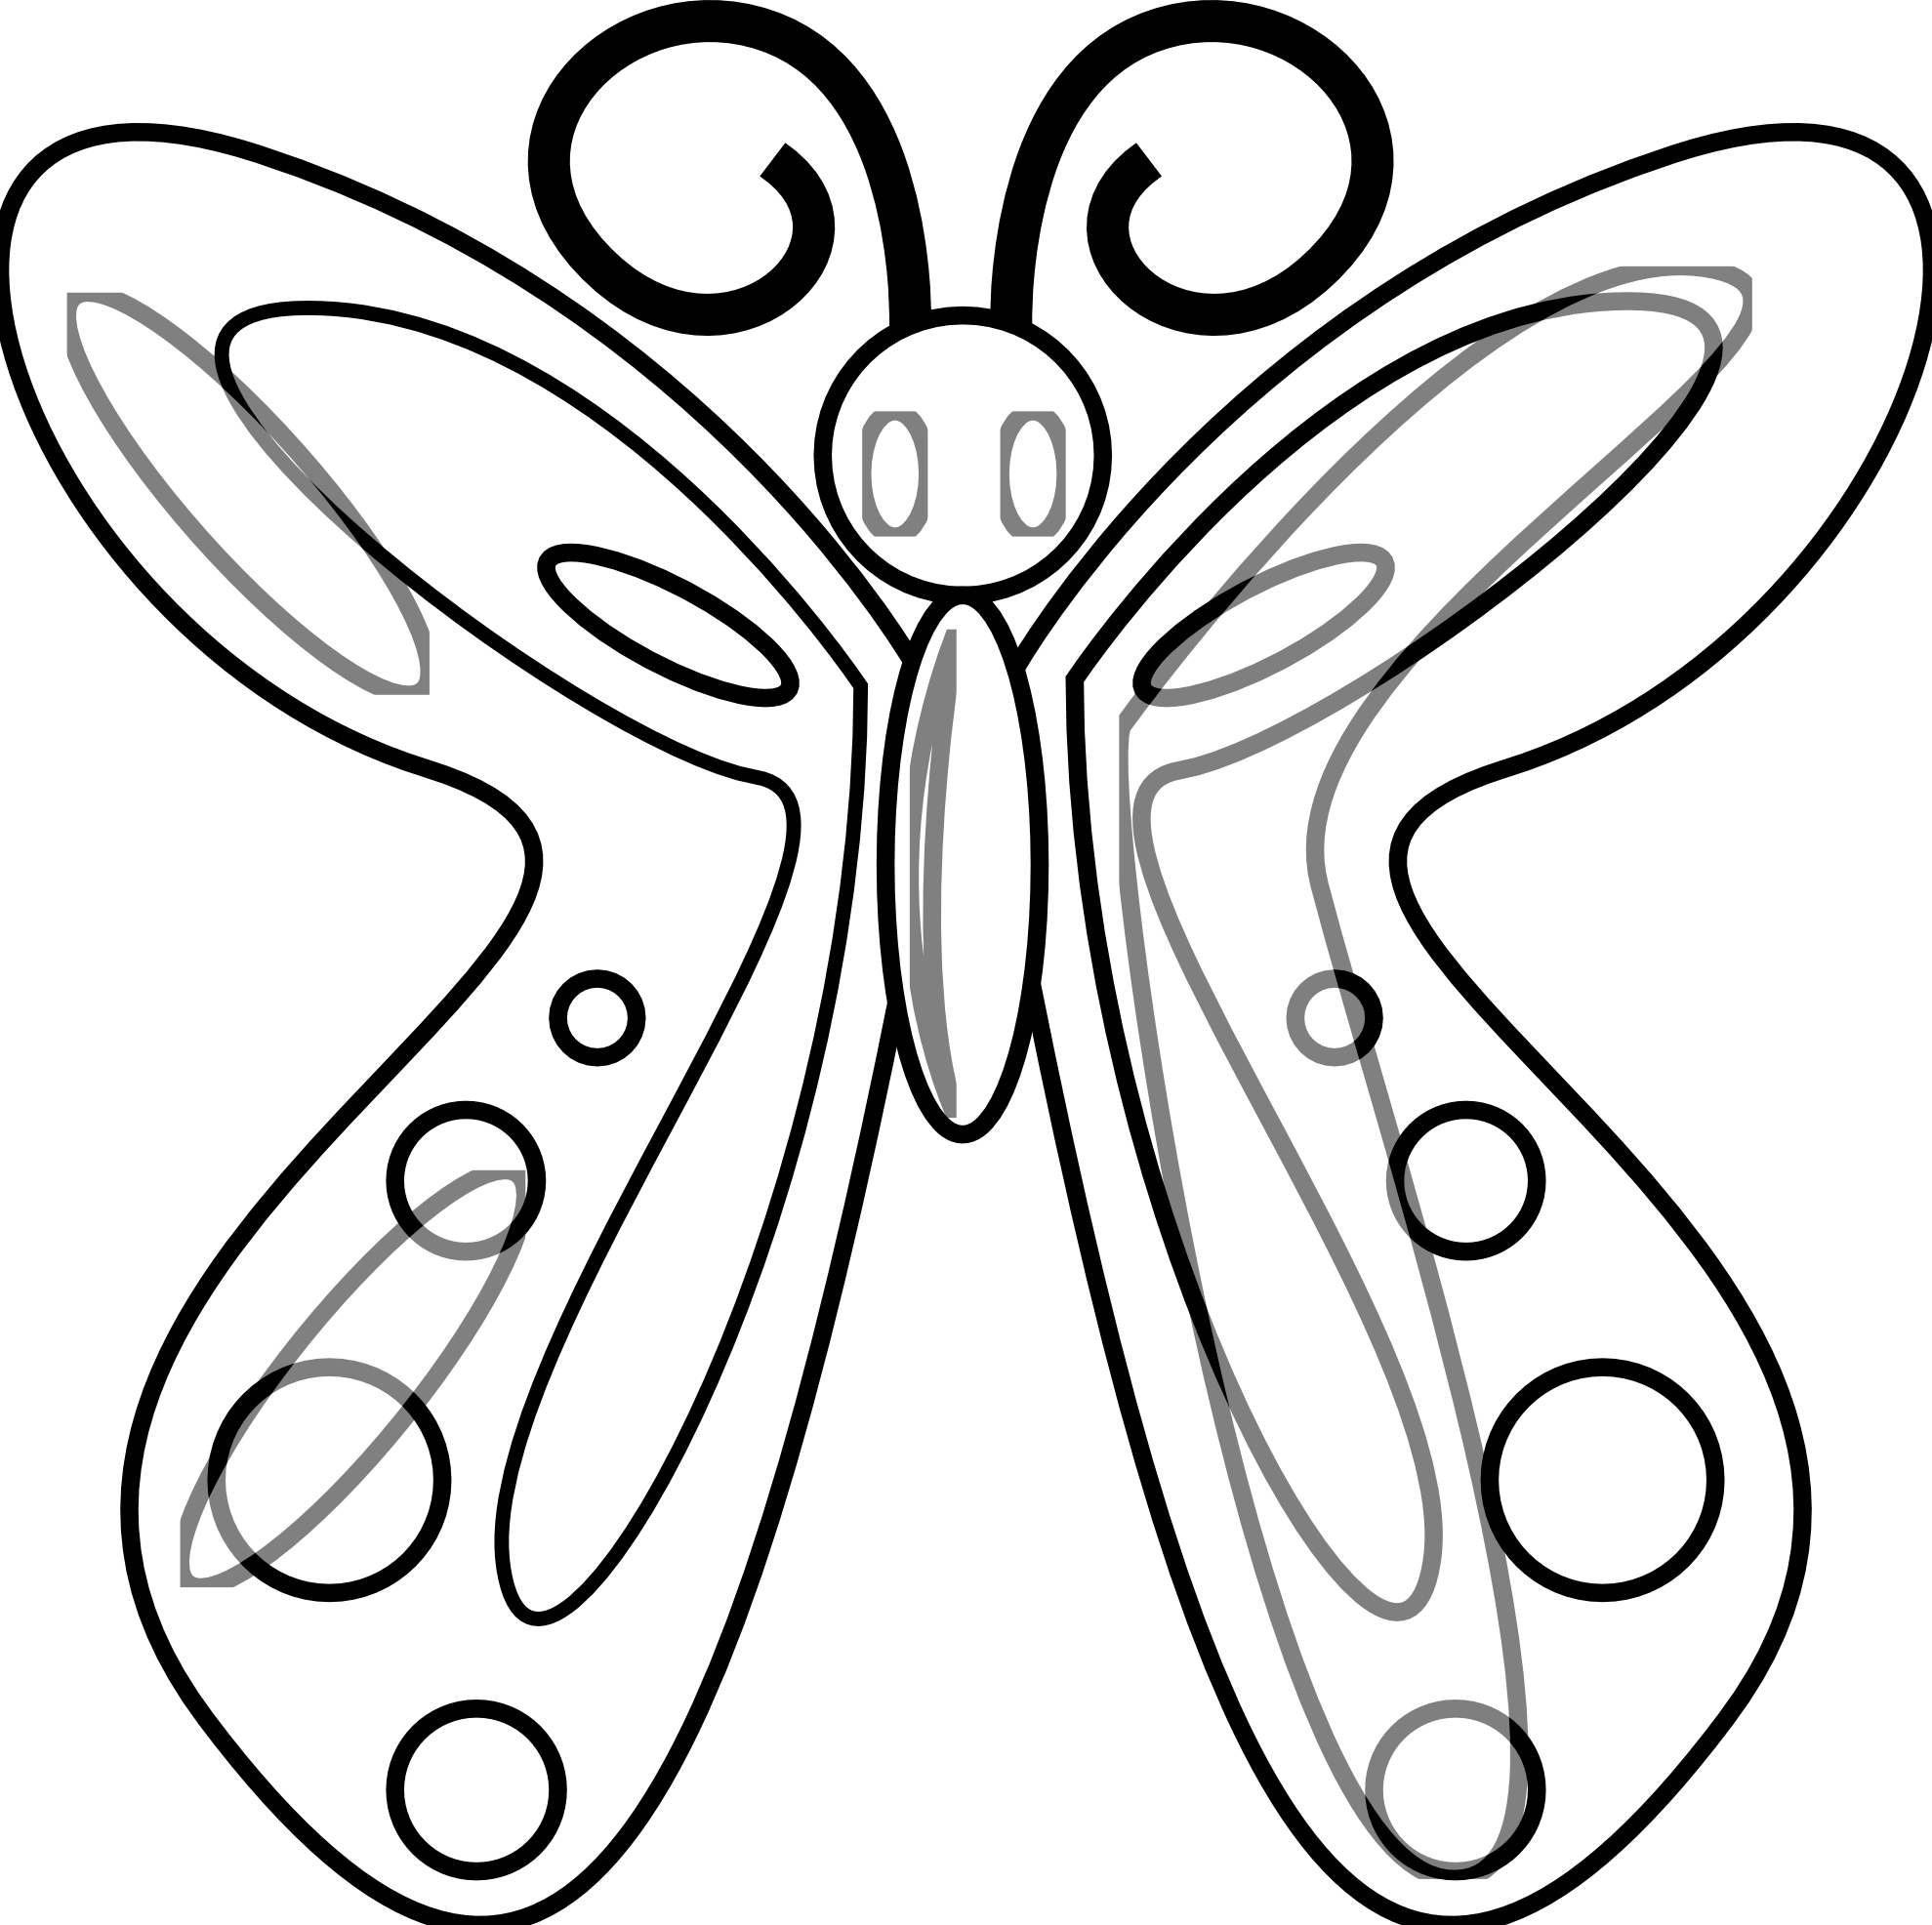 Line Drawing Net : Butterfly net drawing clipart panda free images